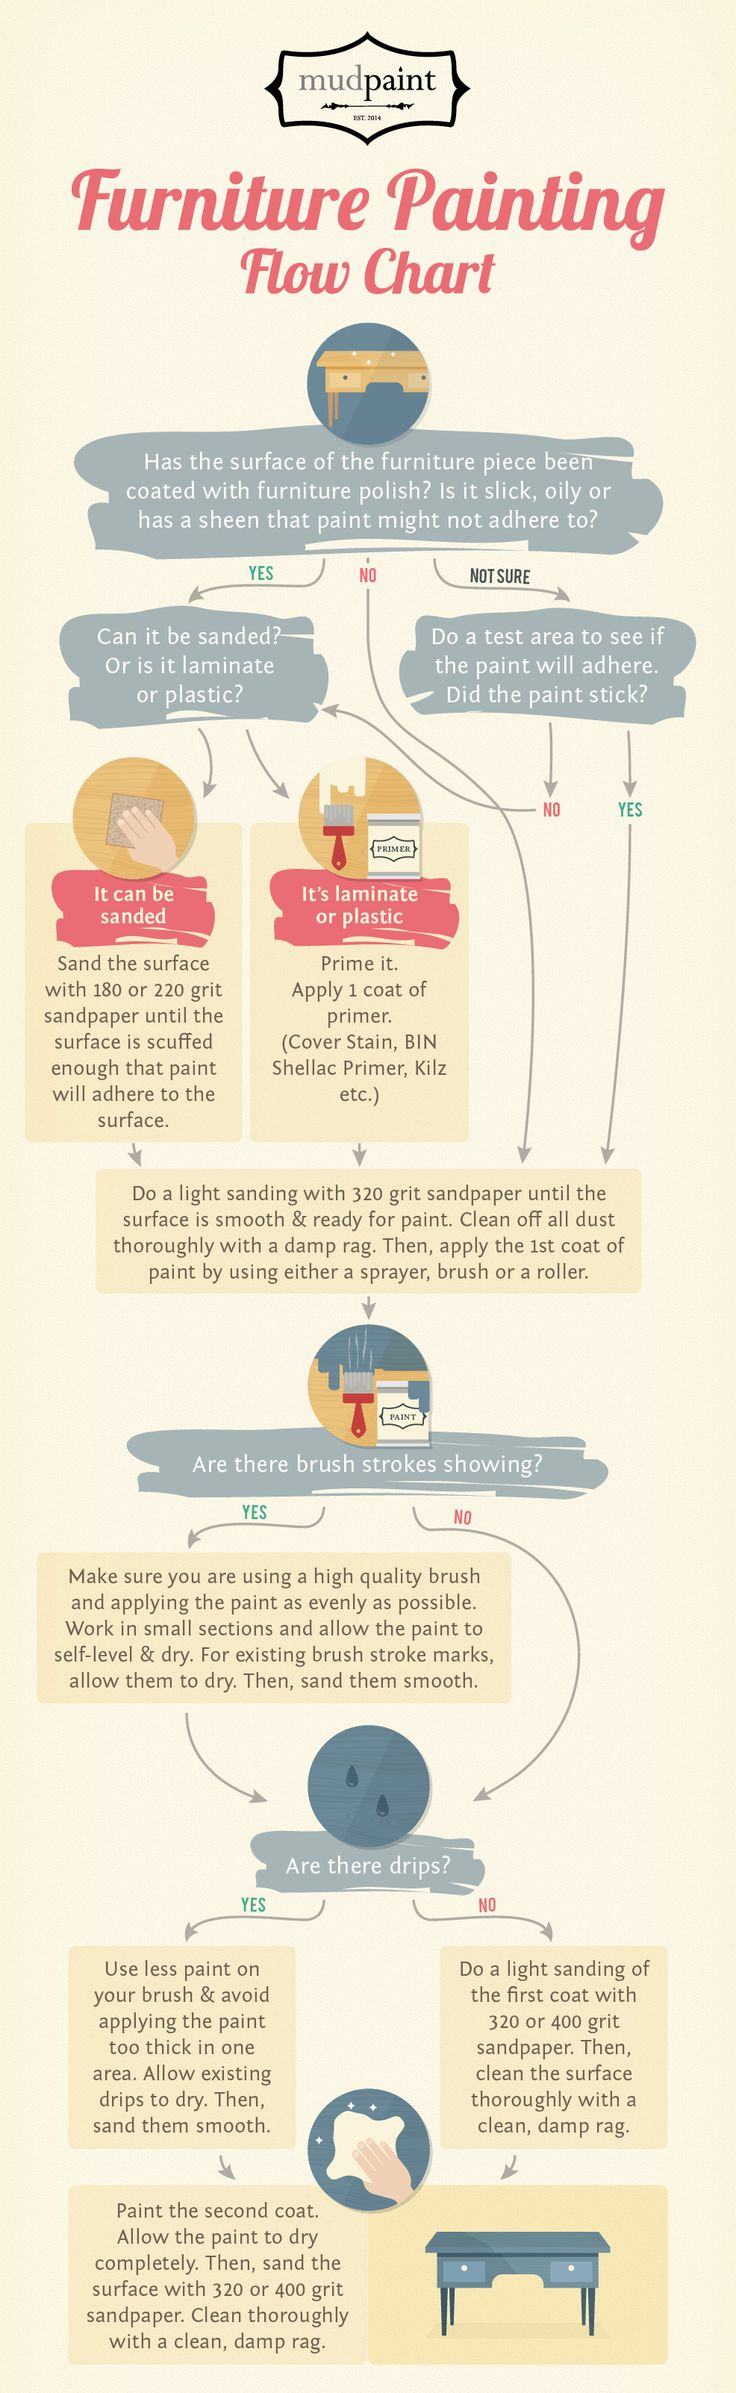 For those of you who are new to furniture painting.  Here's a step-by-step flow chart on how to paint a piece of furniture from start to finish.  It was posted originally on Mudpaint.com.